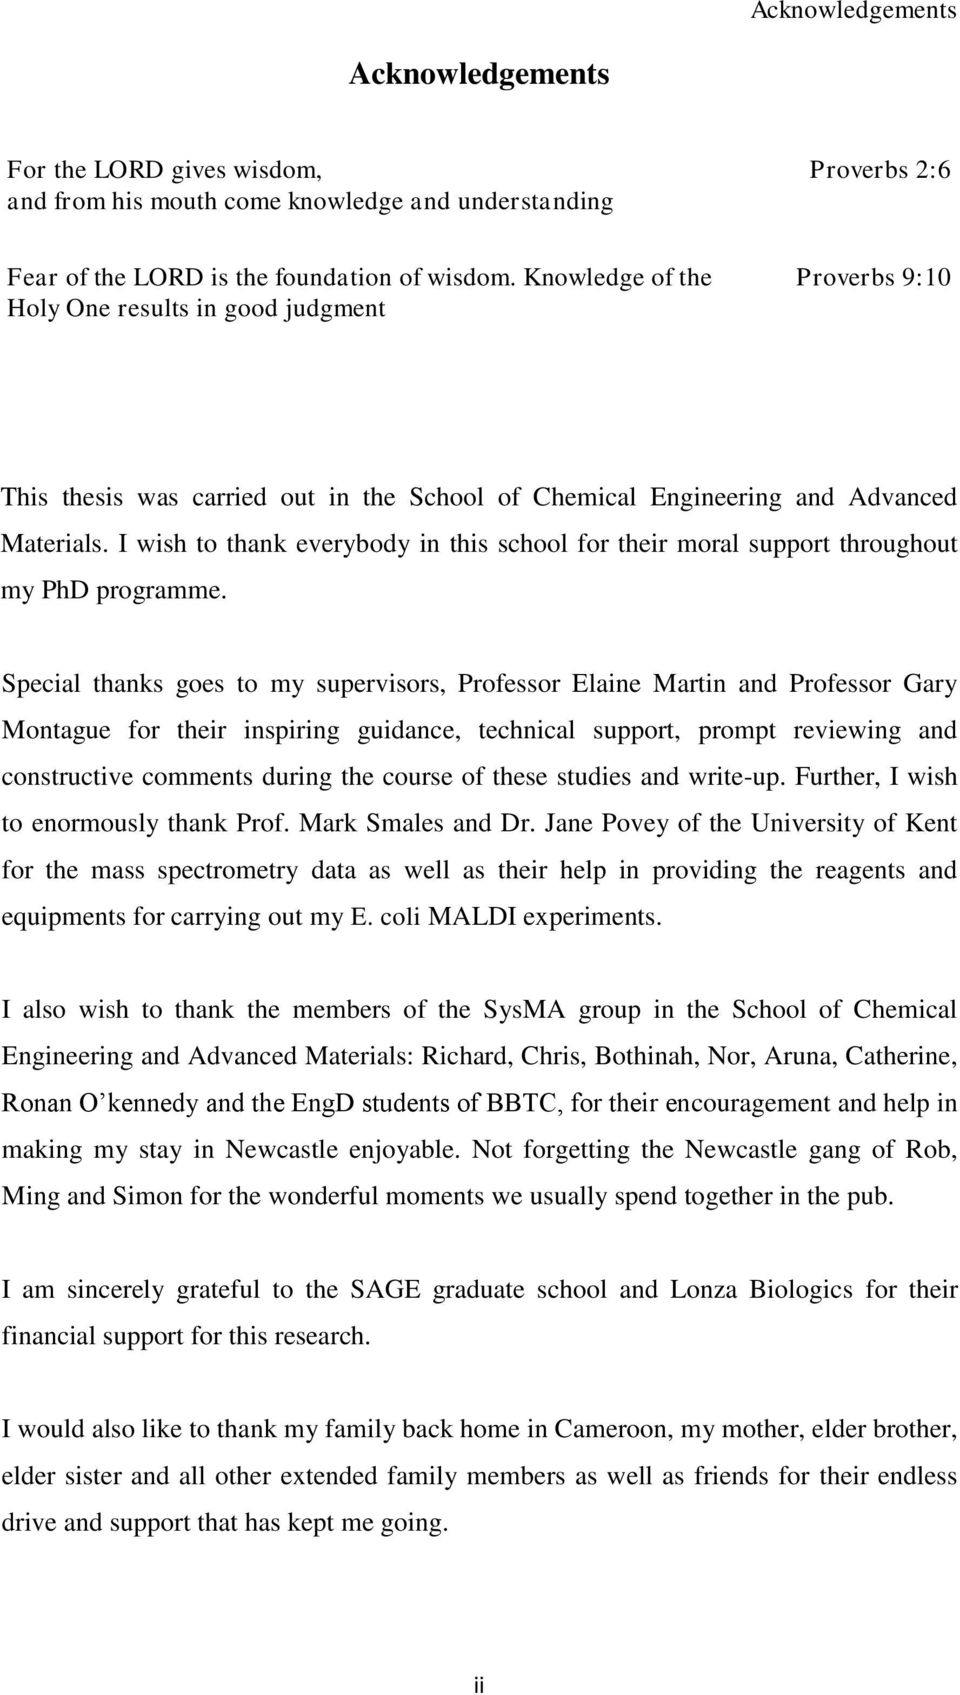 I wish to thank everybody in this school for their moral support throughout my PhD programme.